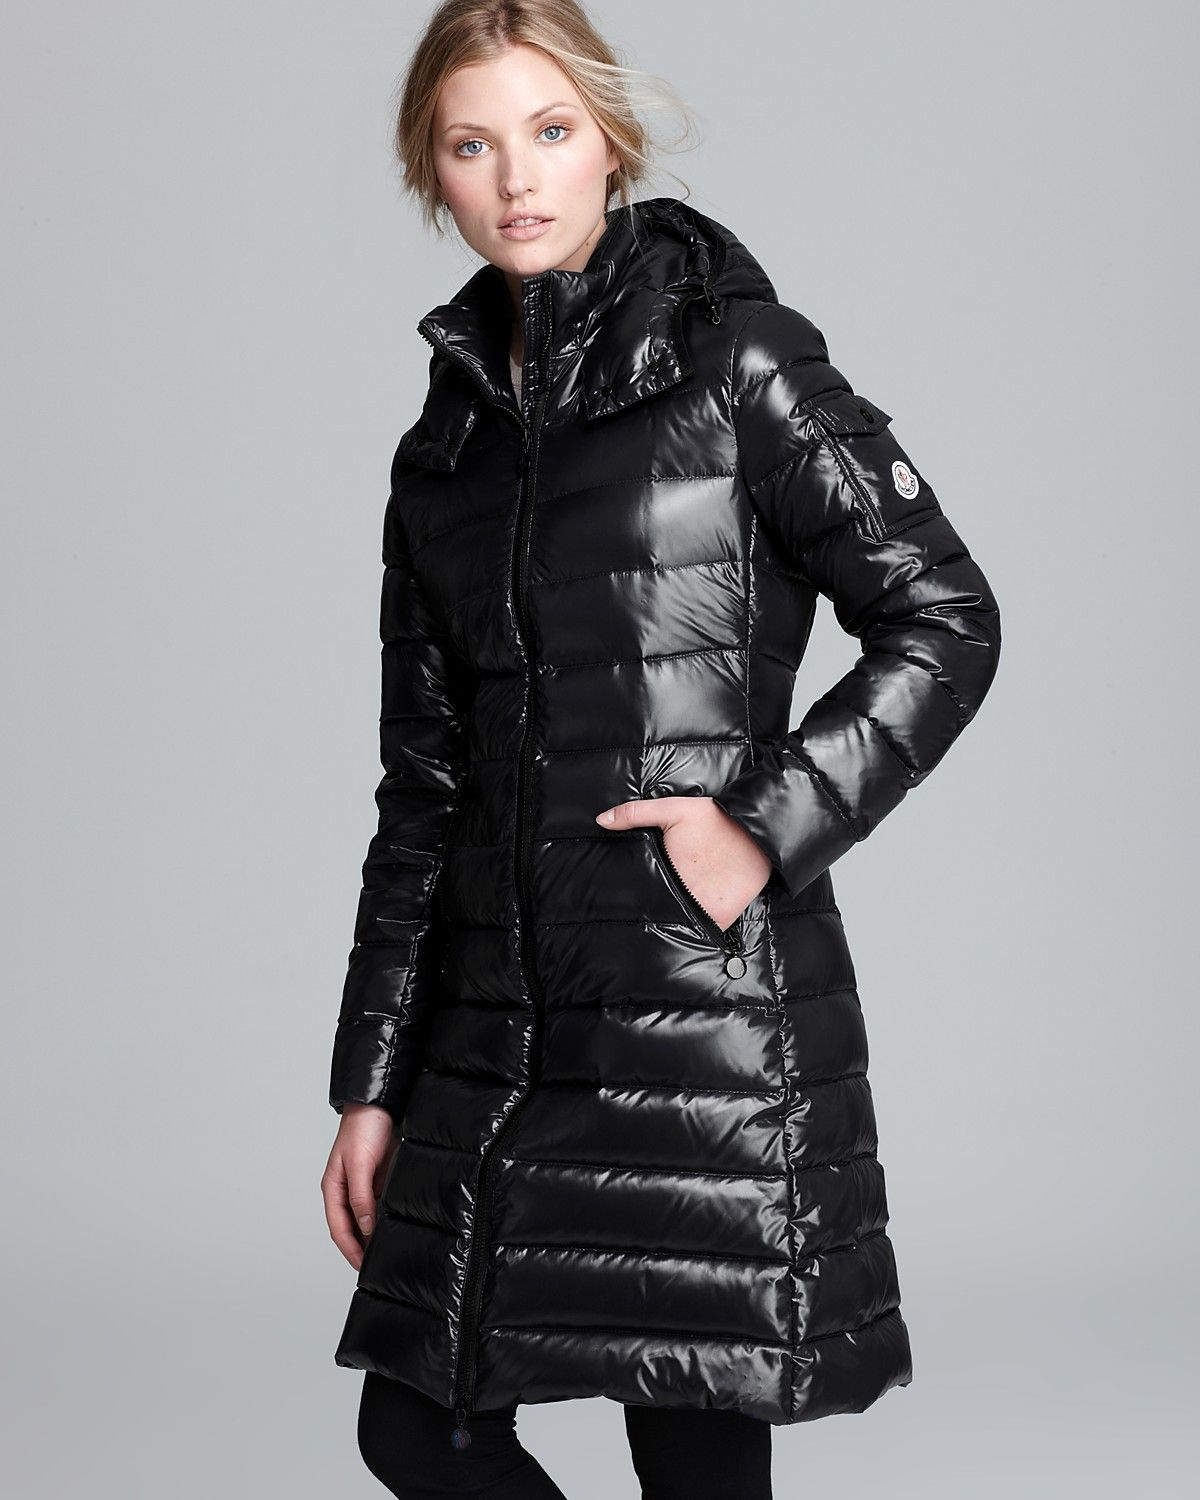 MONCLER DOWN COAT - MOKA LACQUER QUILTED MID LENGTH $1095 | Coat ...